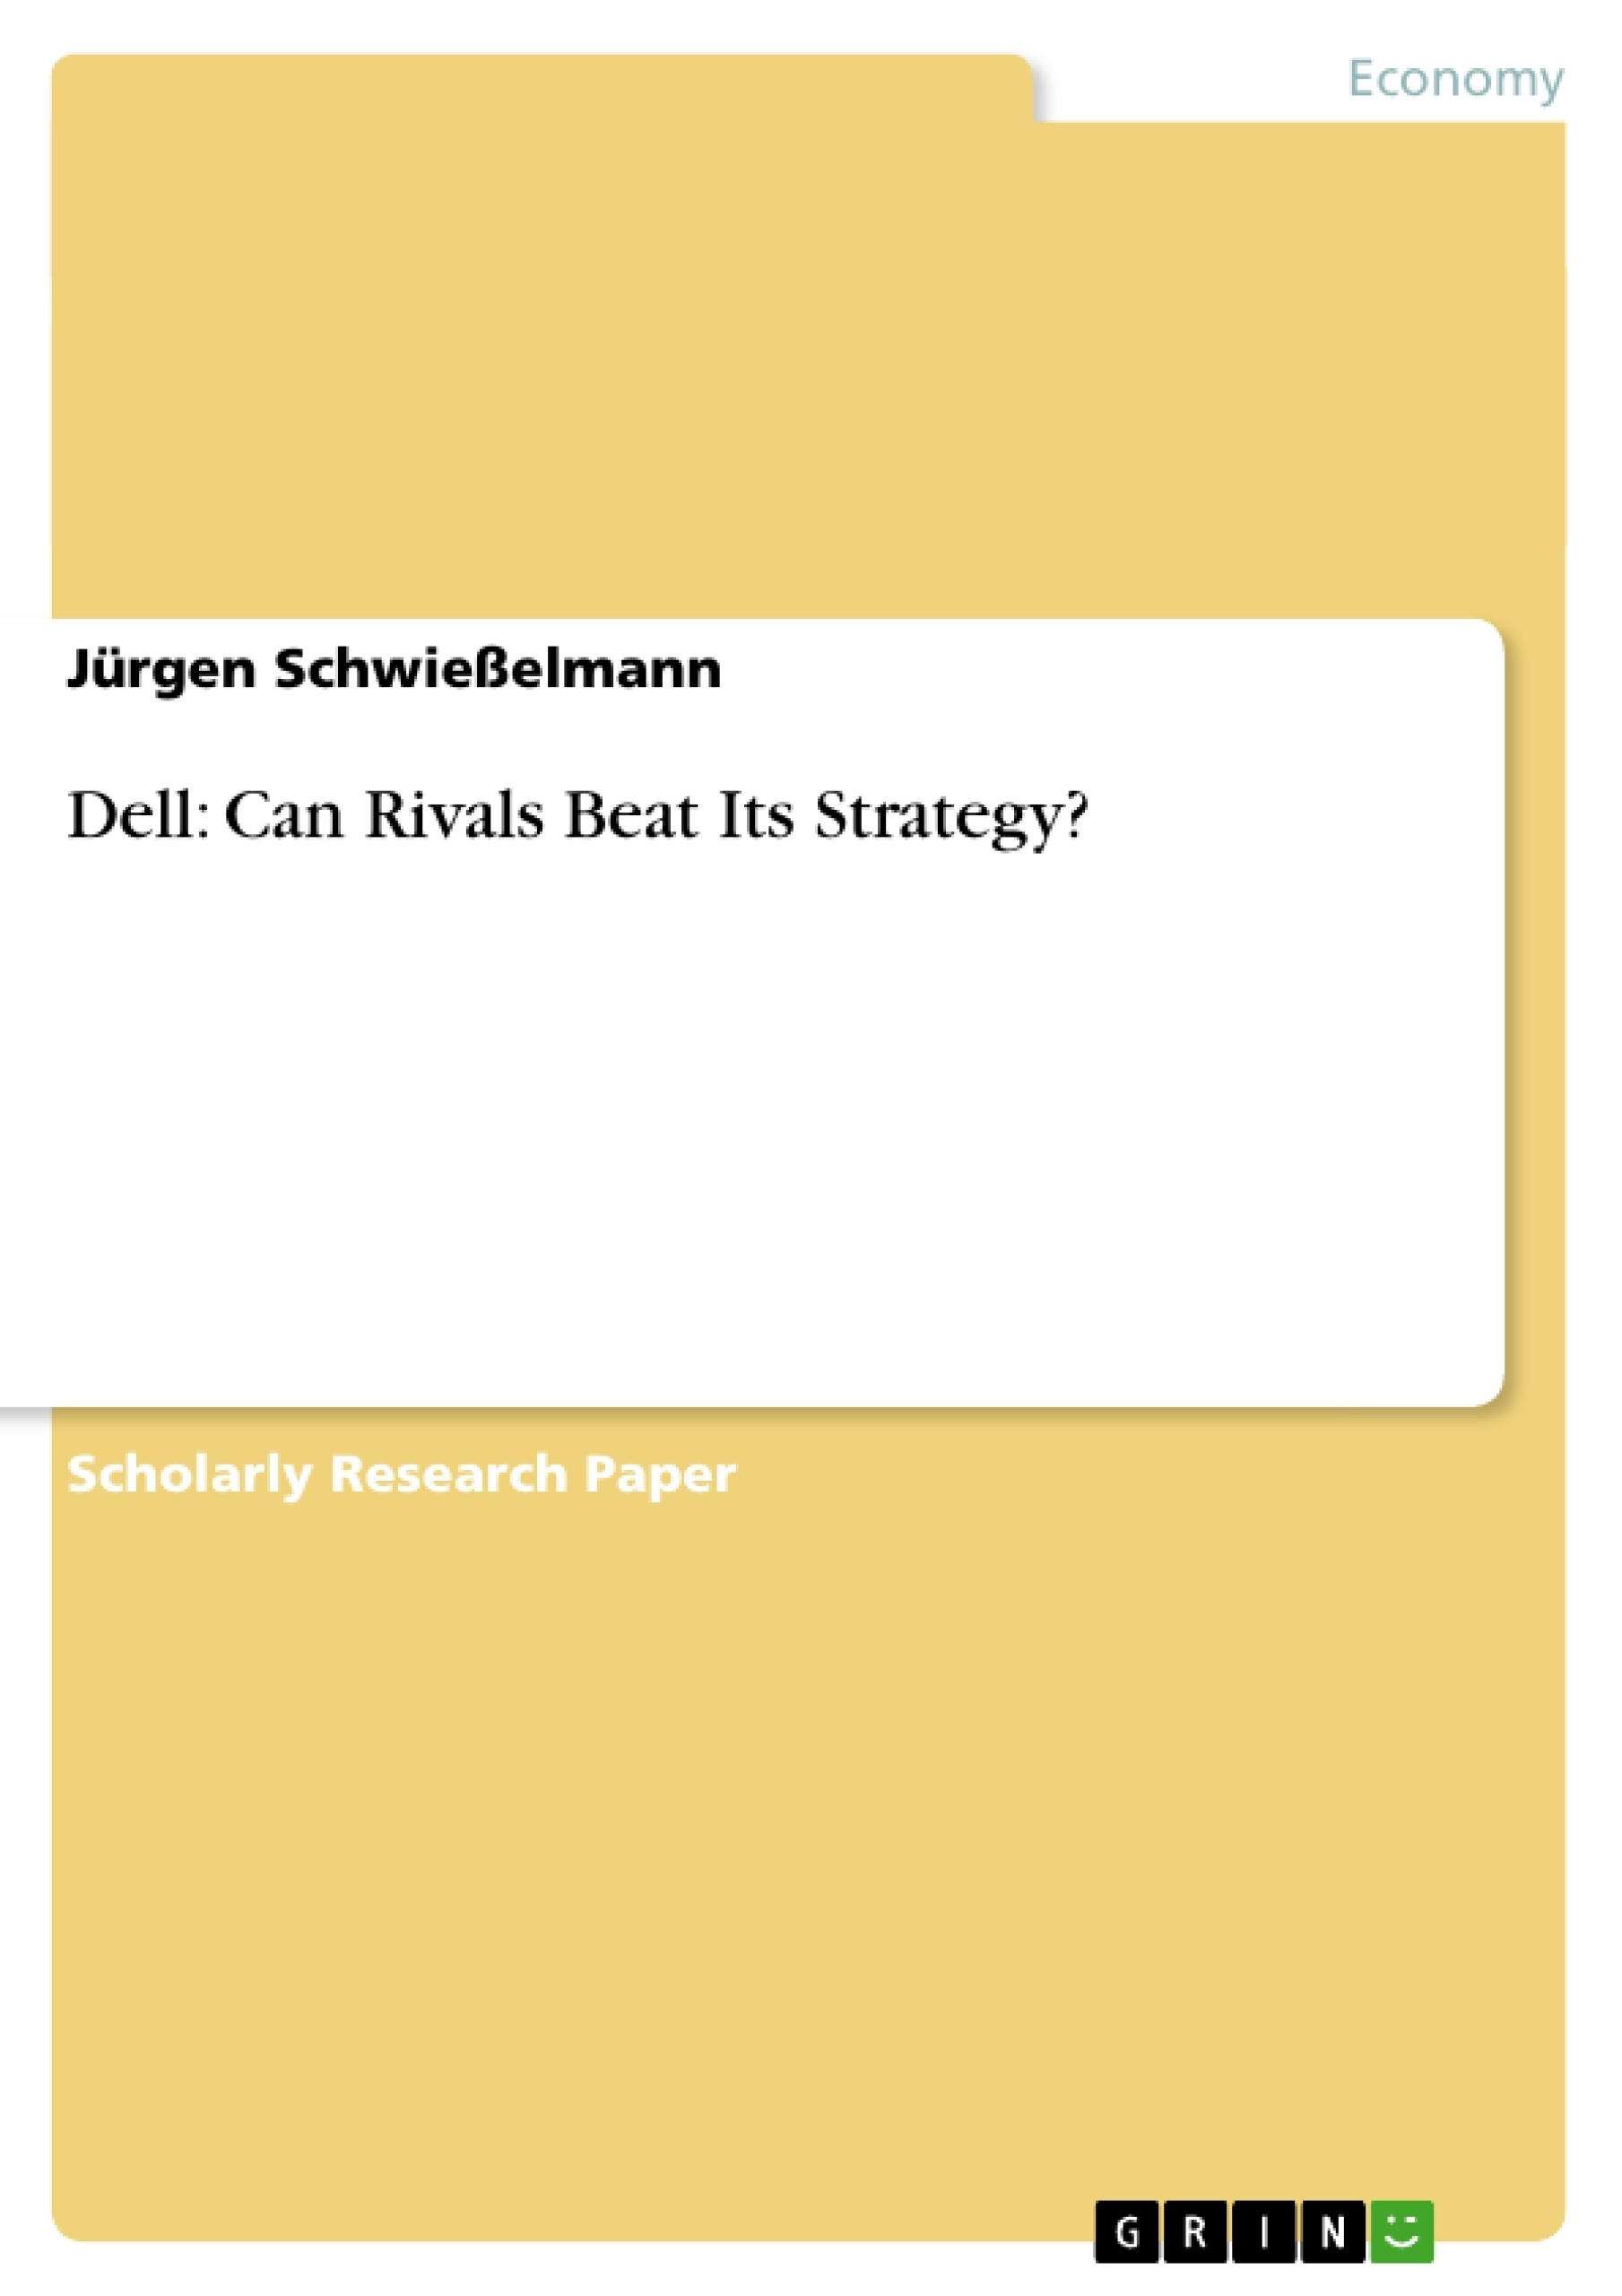 Title: Dell: Can Rivals Beat Its Strategy?